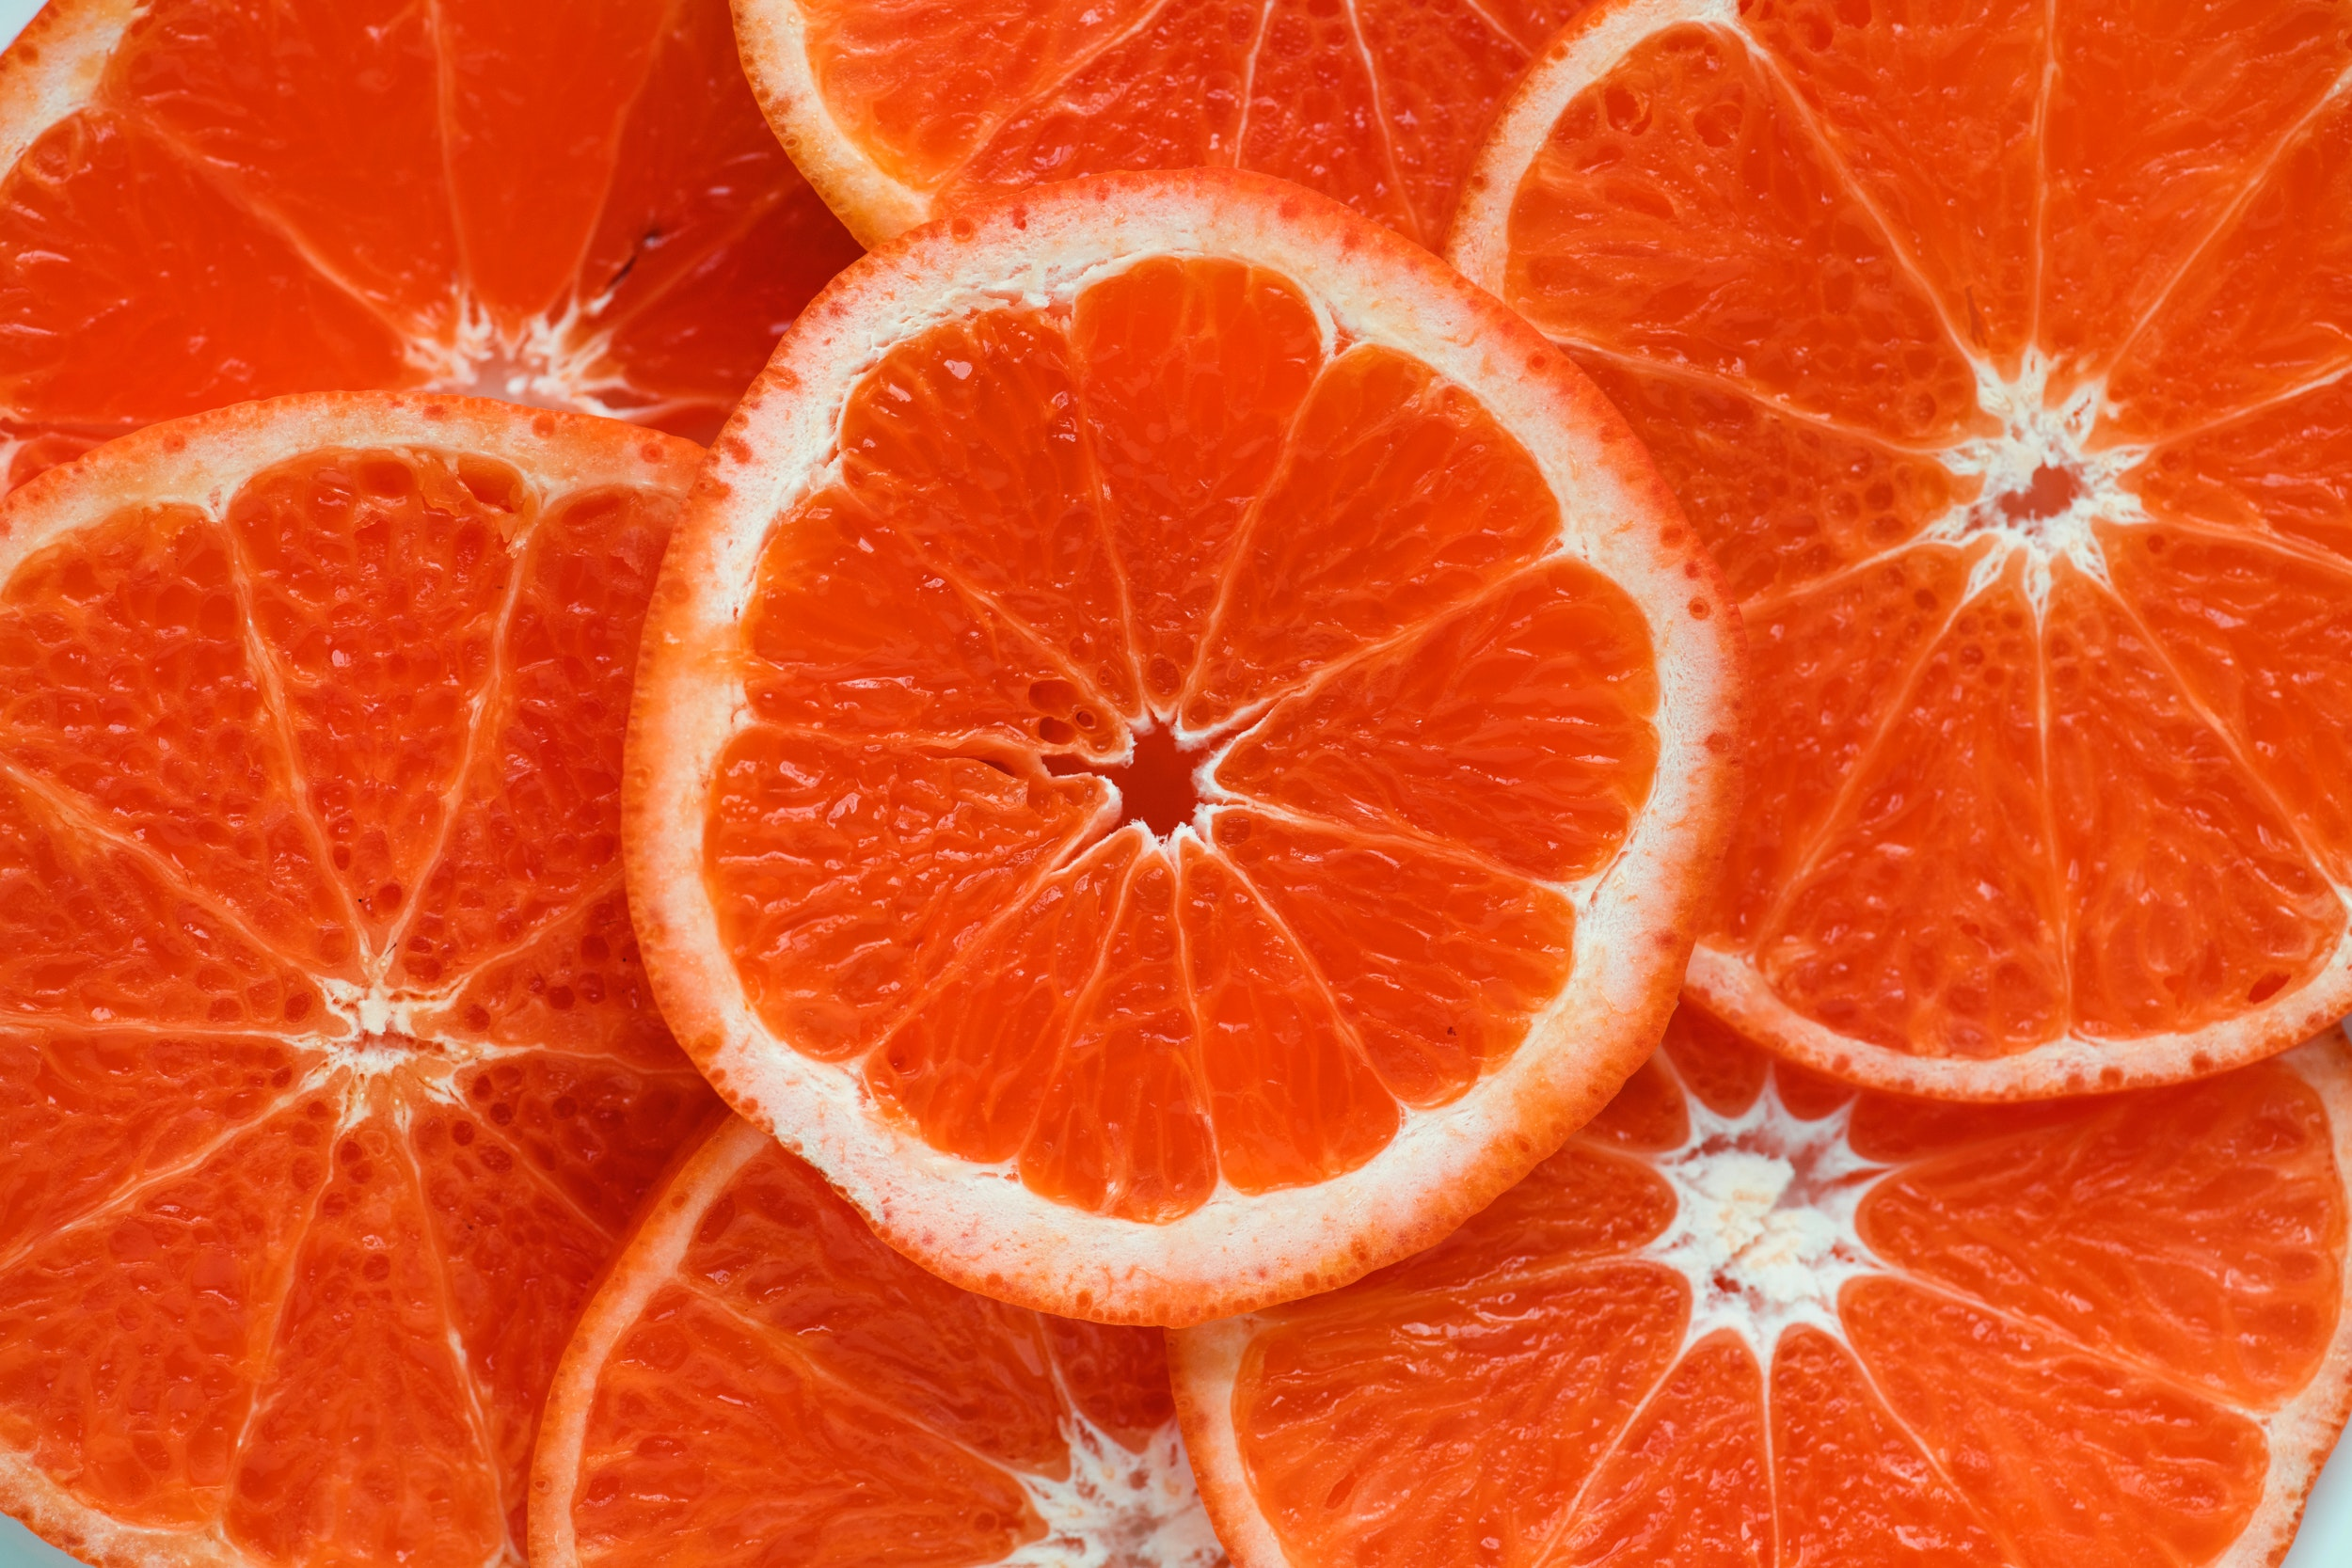 Citrus fruits are high in Vitamin C which helps to boost iron absorption.